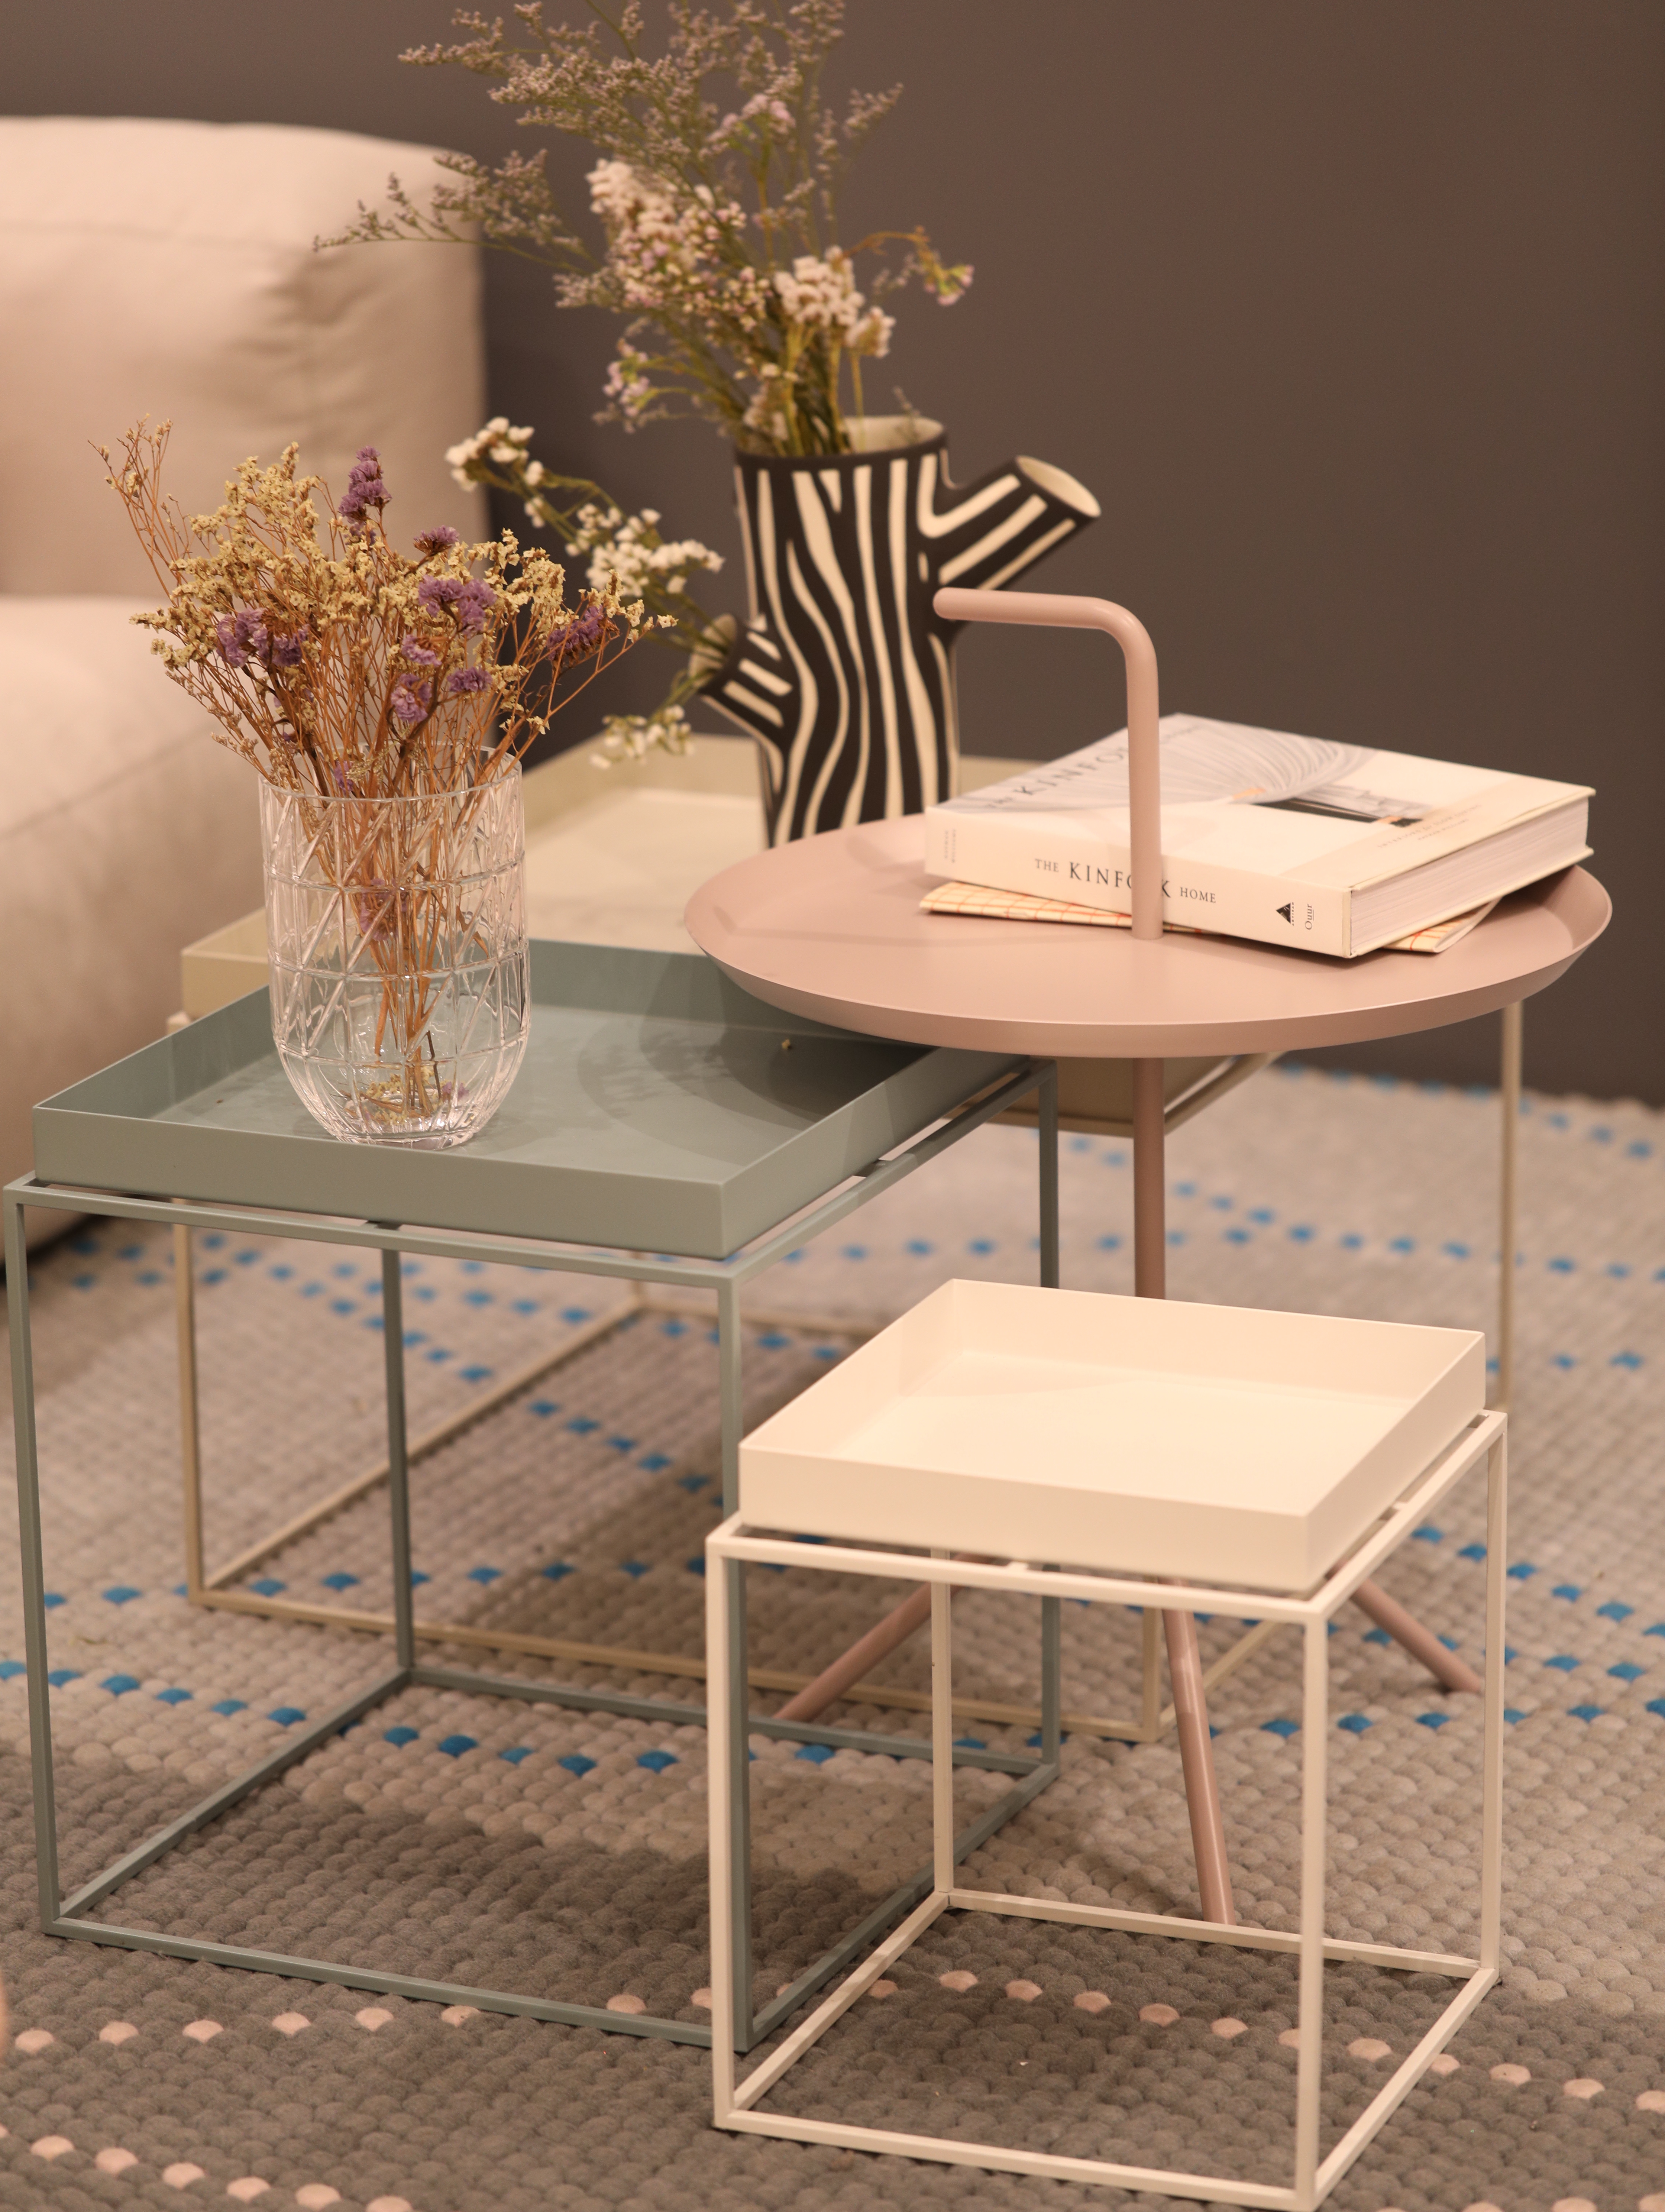 7 Home and Lifestyle Pieces We Love from Design Story - Googly ...